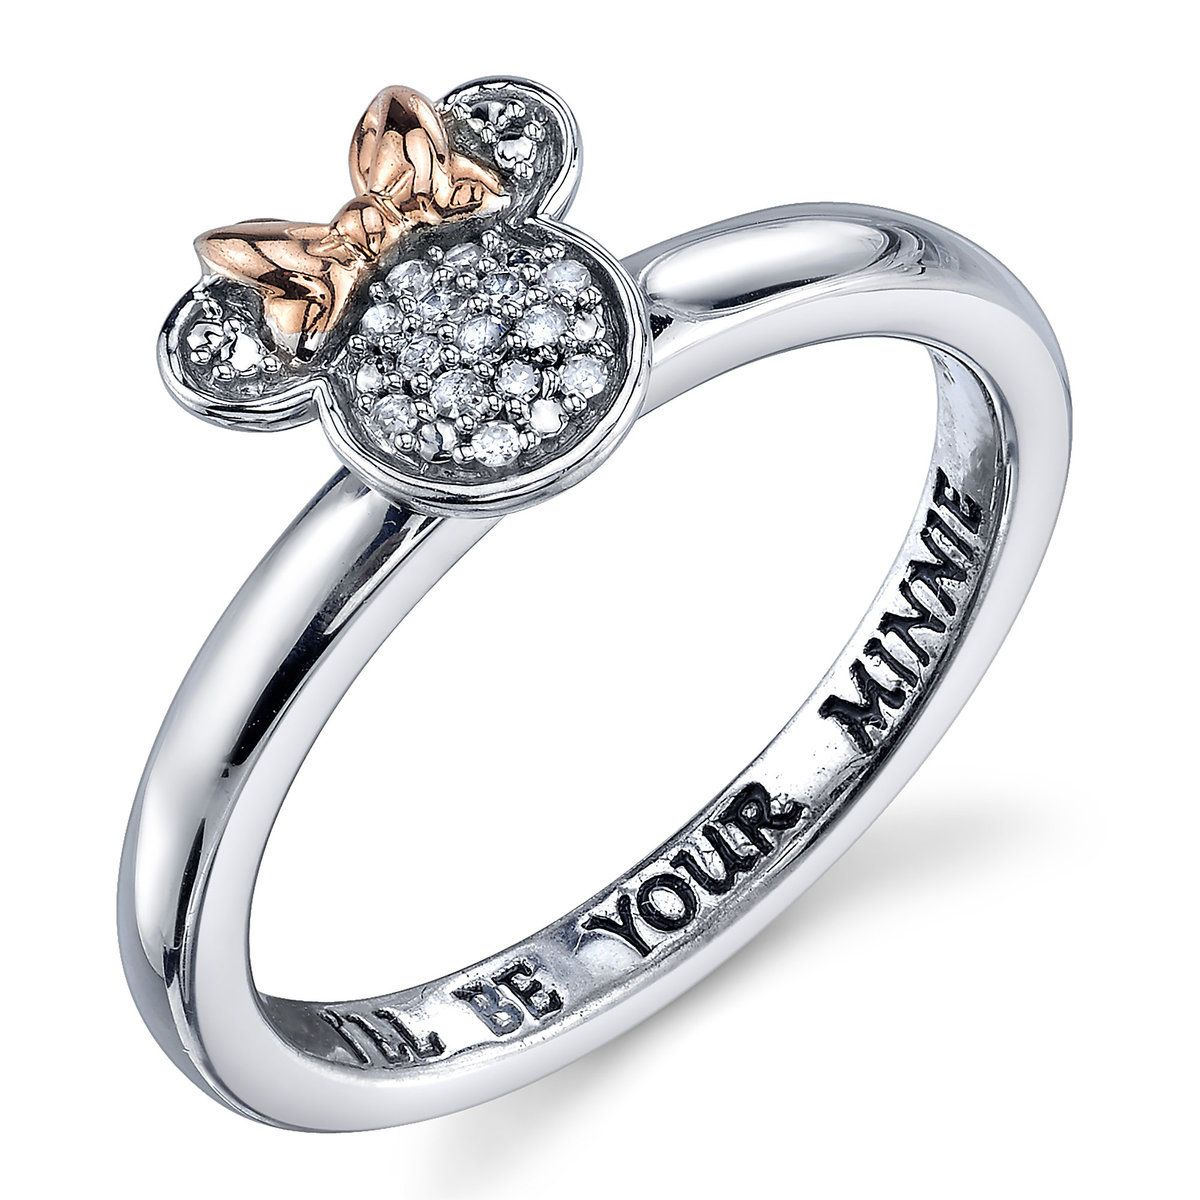 0d8c0c4d1d778 Product Image of Minnie Mouse Diamond Ring for Women   1